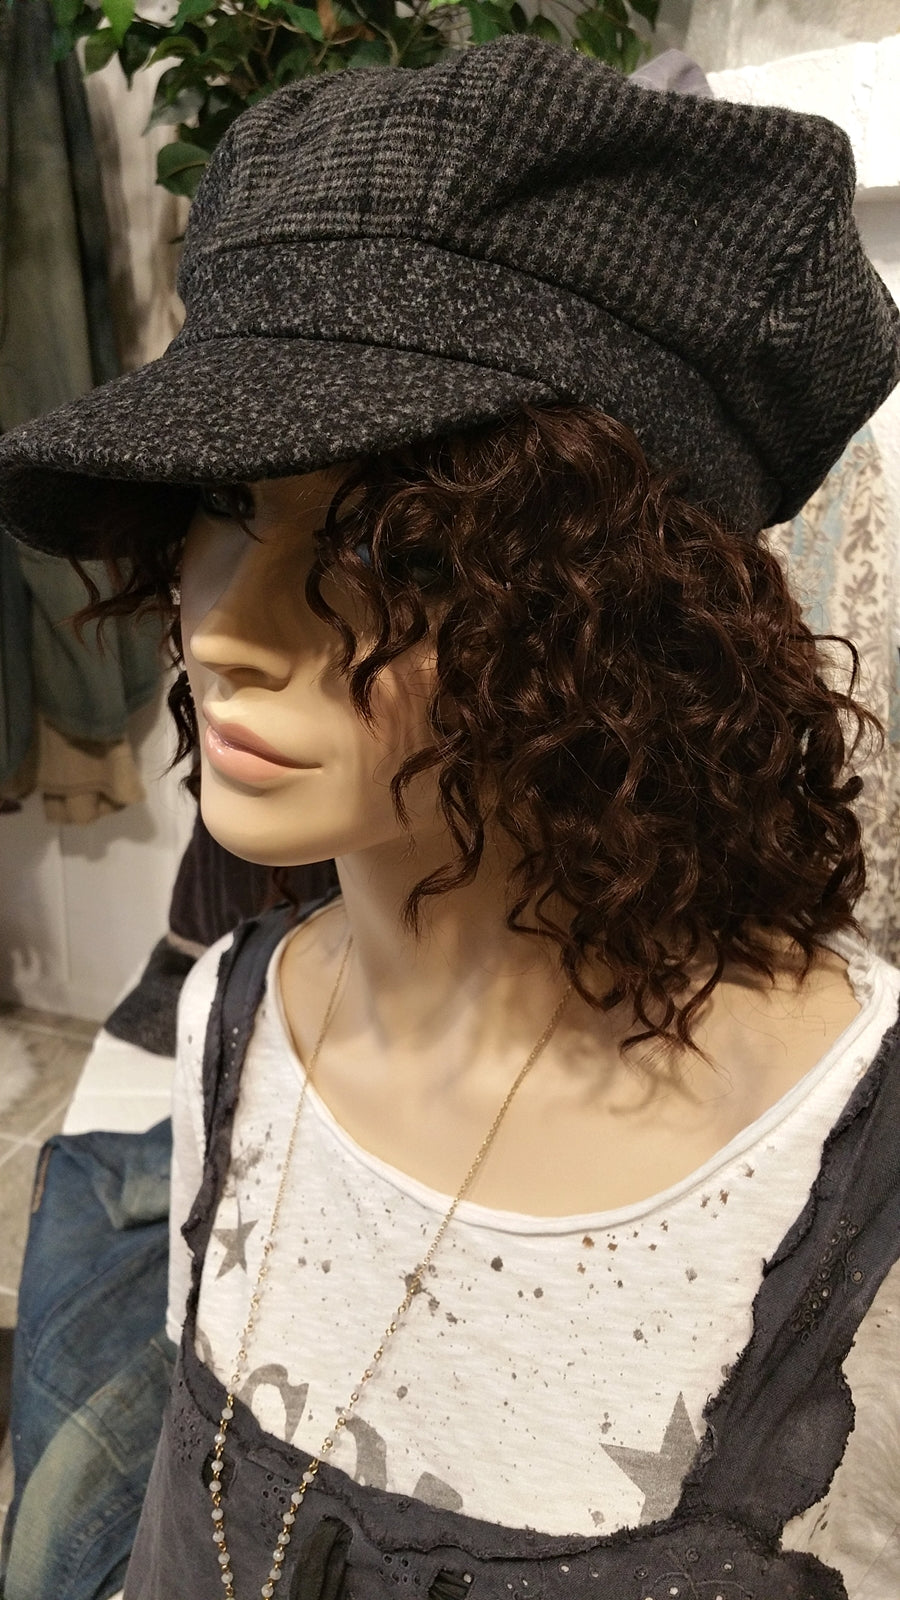 Checkered Cabby Newsboy Hat with Stripes